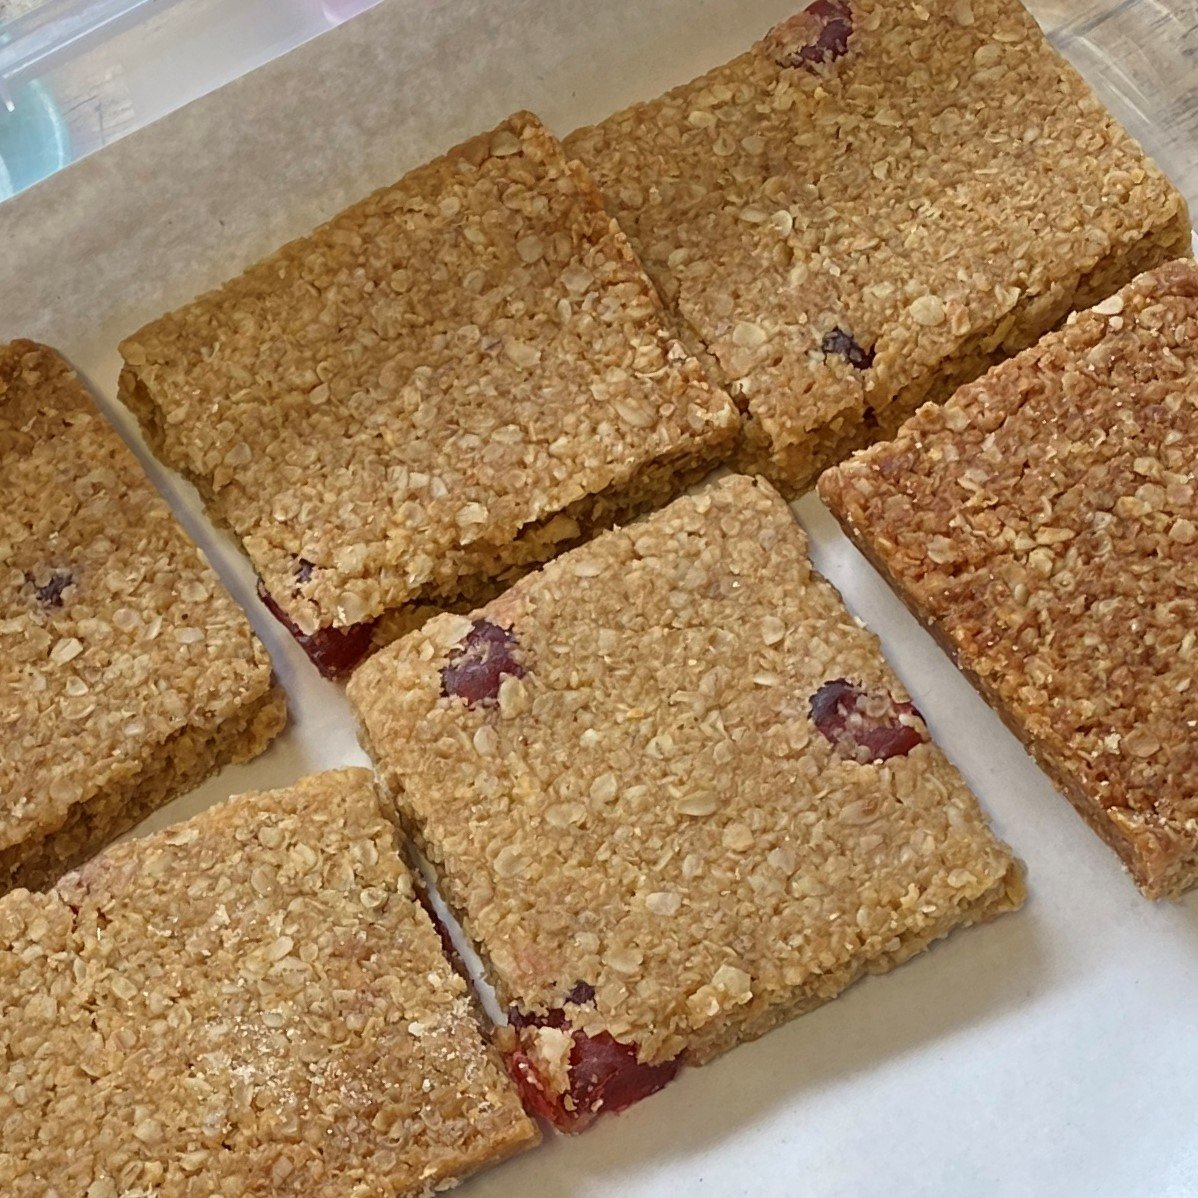 Cherry and coconut flapjack - £1.35